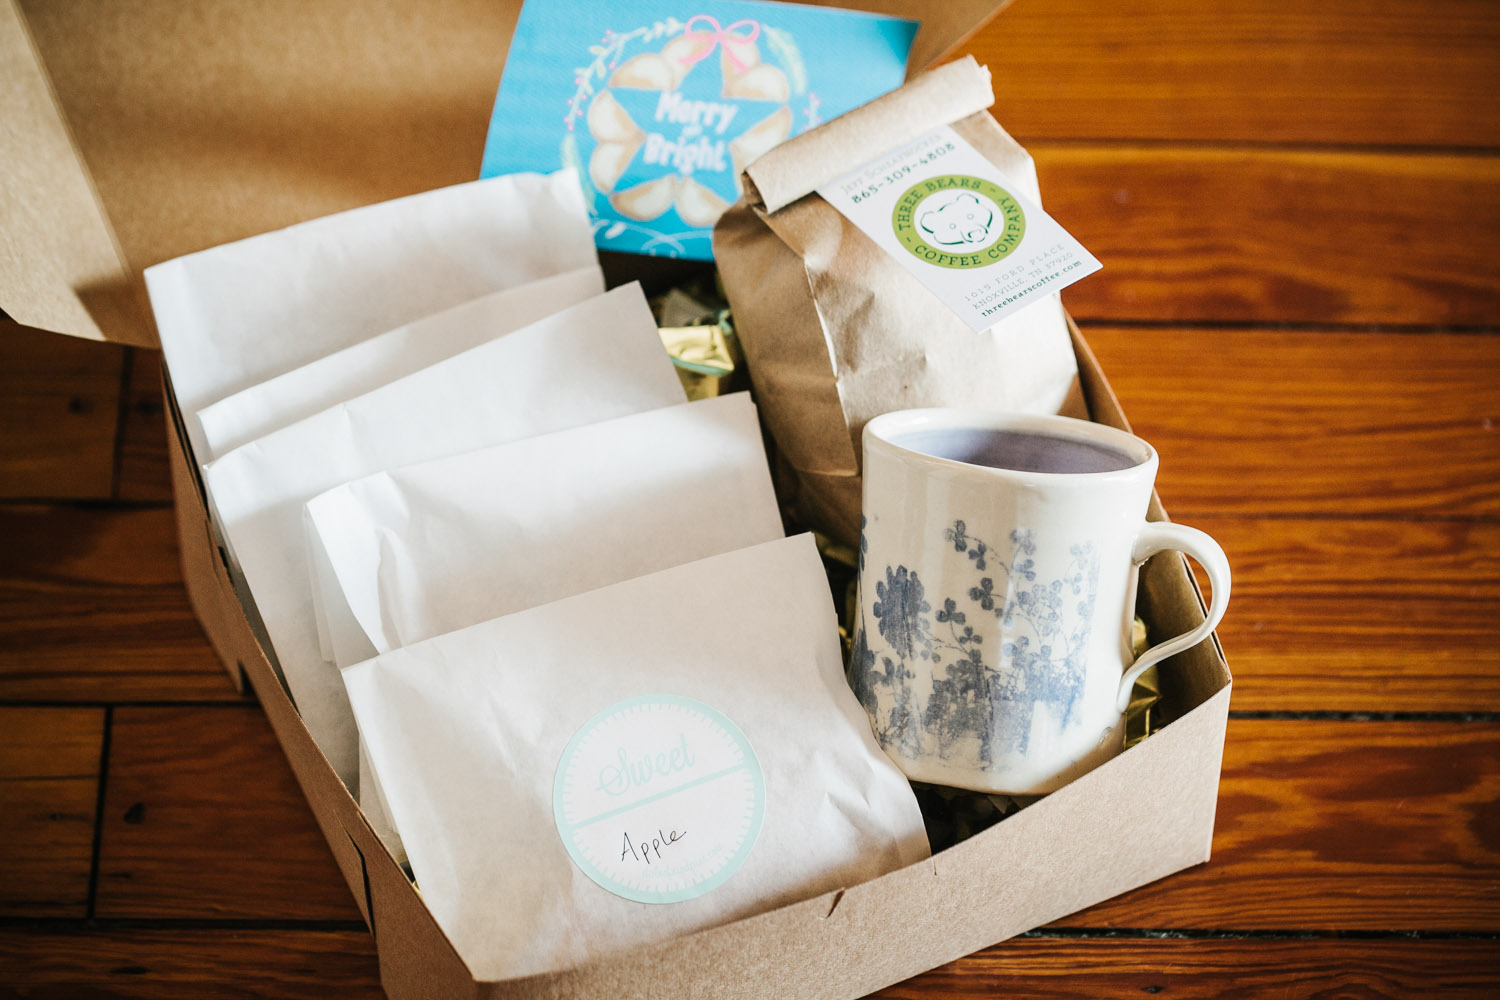 Coffee Lover Pie Box    The Coffee Lover Pie Box comes with six fried pies in the flavor of your choice, one half pound of three bears coffee, a handmade mug by local ceramist Amy E. Hand, and a holiday greeting card byCurly Willow Co.